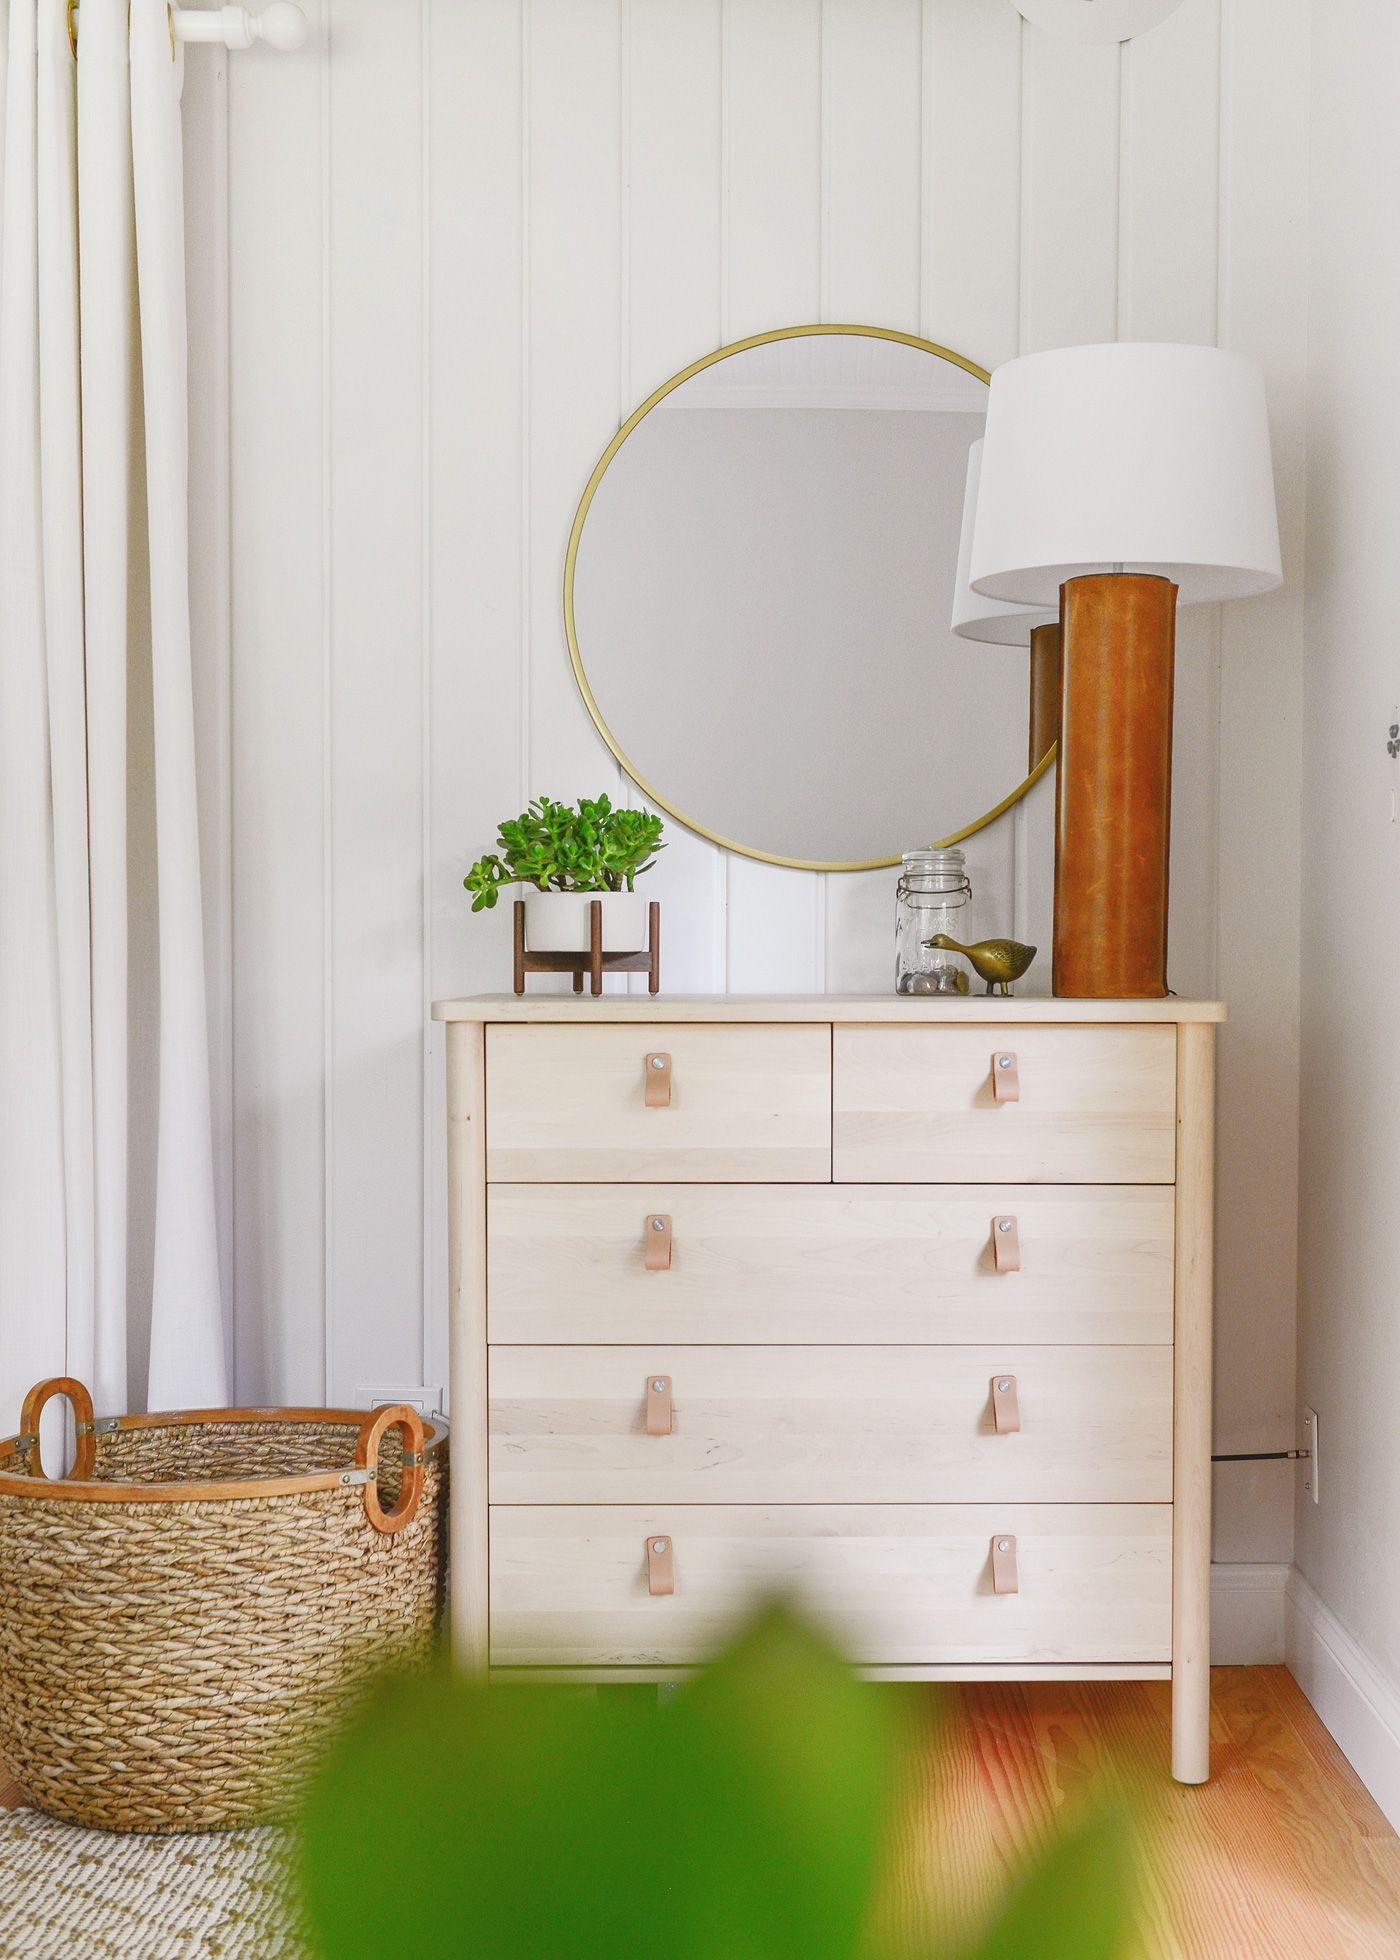 Our Bedroom Dresser Nook Packs Function And Beauty Into One We Used The Ikea Bjorksnas Everyone S Favorite Br Target Mirror To Create A